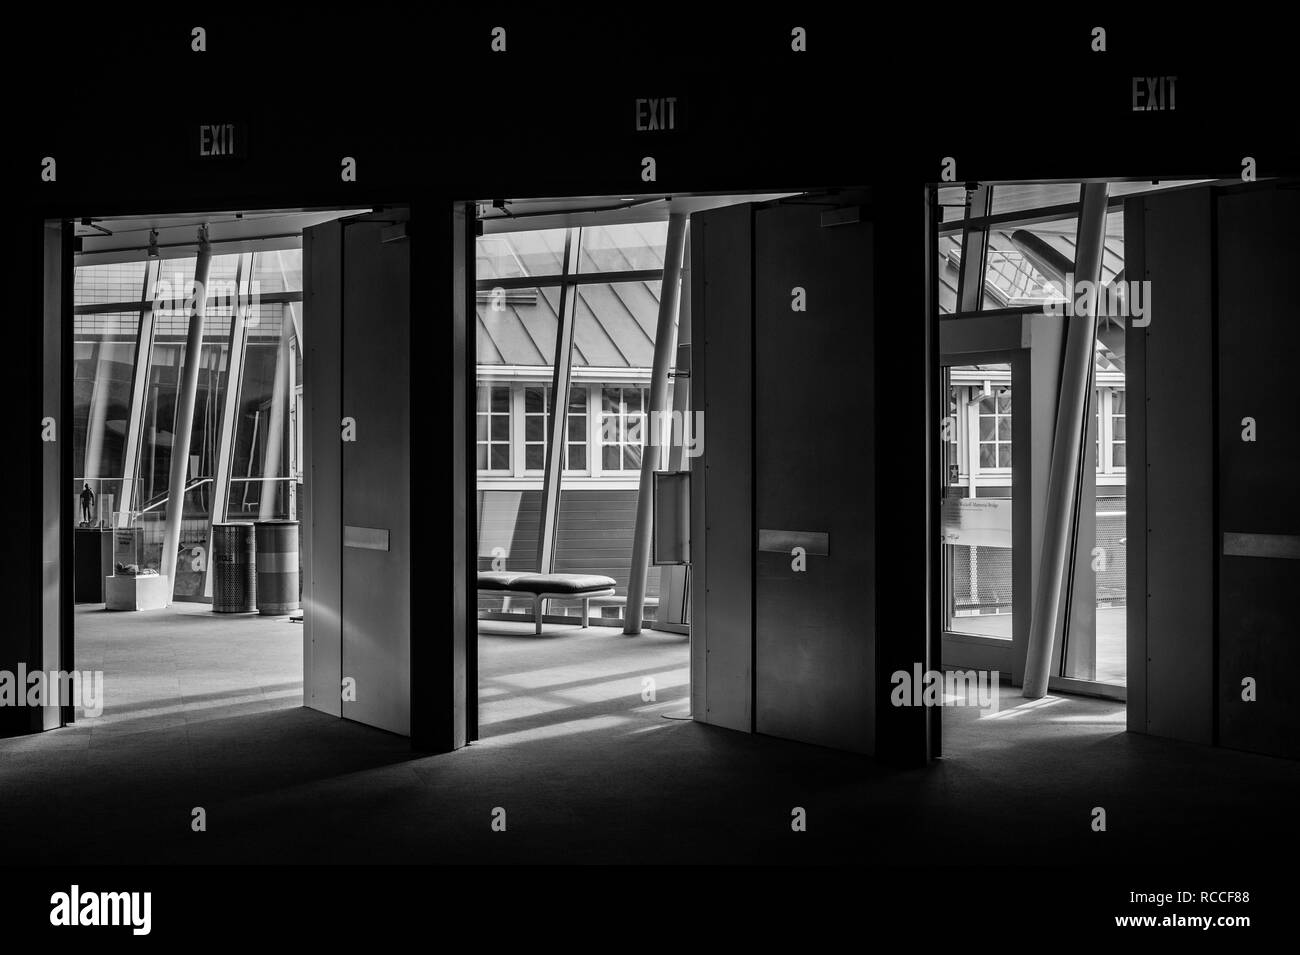 Interior image of doors with exist lights above at the Boeing Museum of Flight - Stock Image